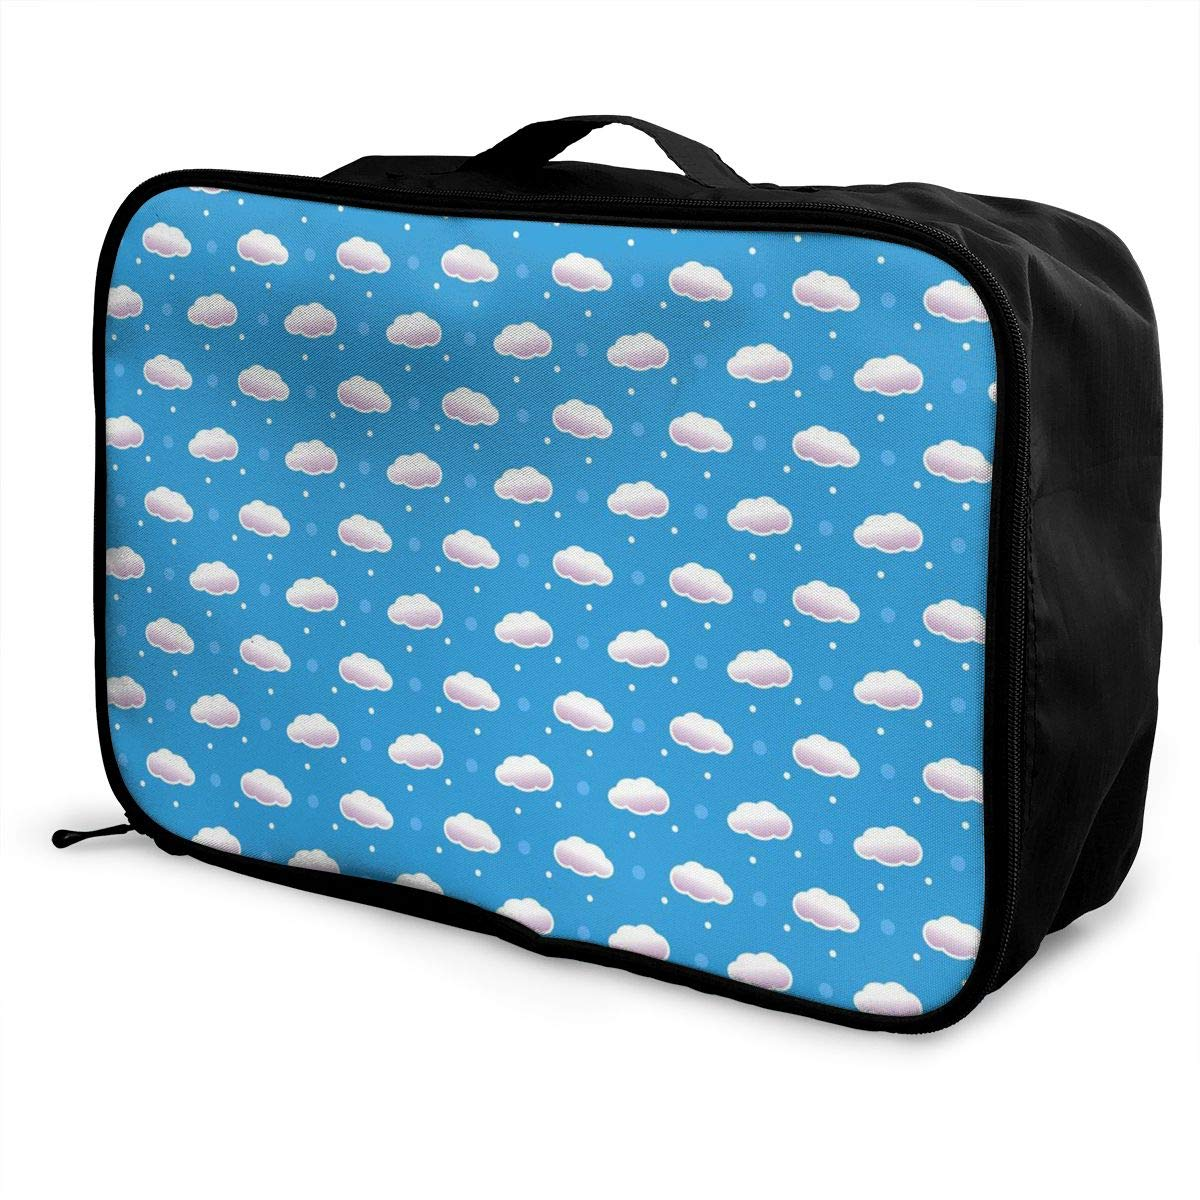 Travel Duffle Bag In Trolley Handle Lightweight Weekend Bags Nylon Luggage Duffel Bag Holiday Overnight Carry On Bag Tote Bag Cartoon Cute Dolphin Sports Gym